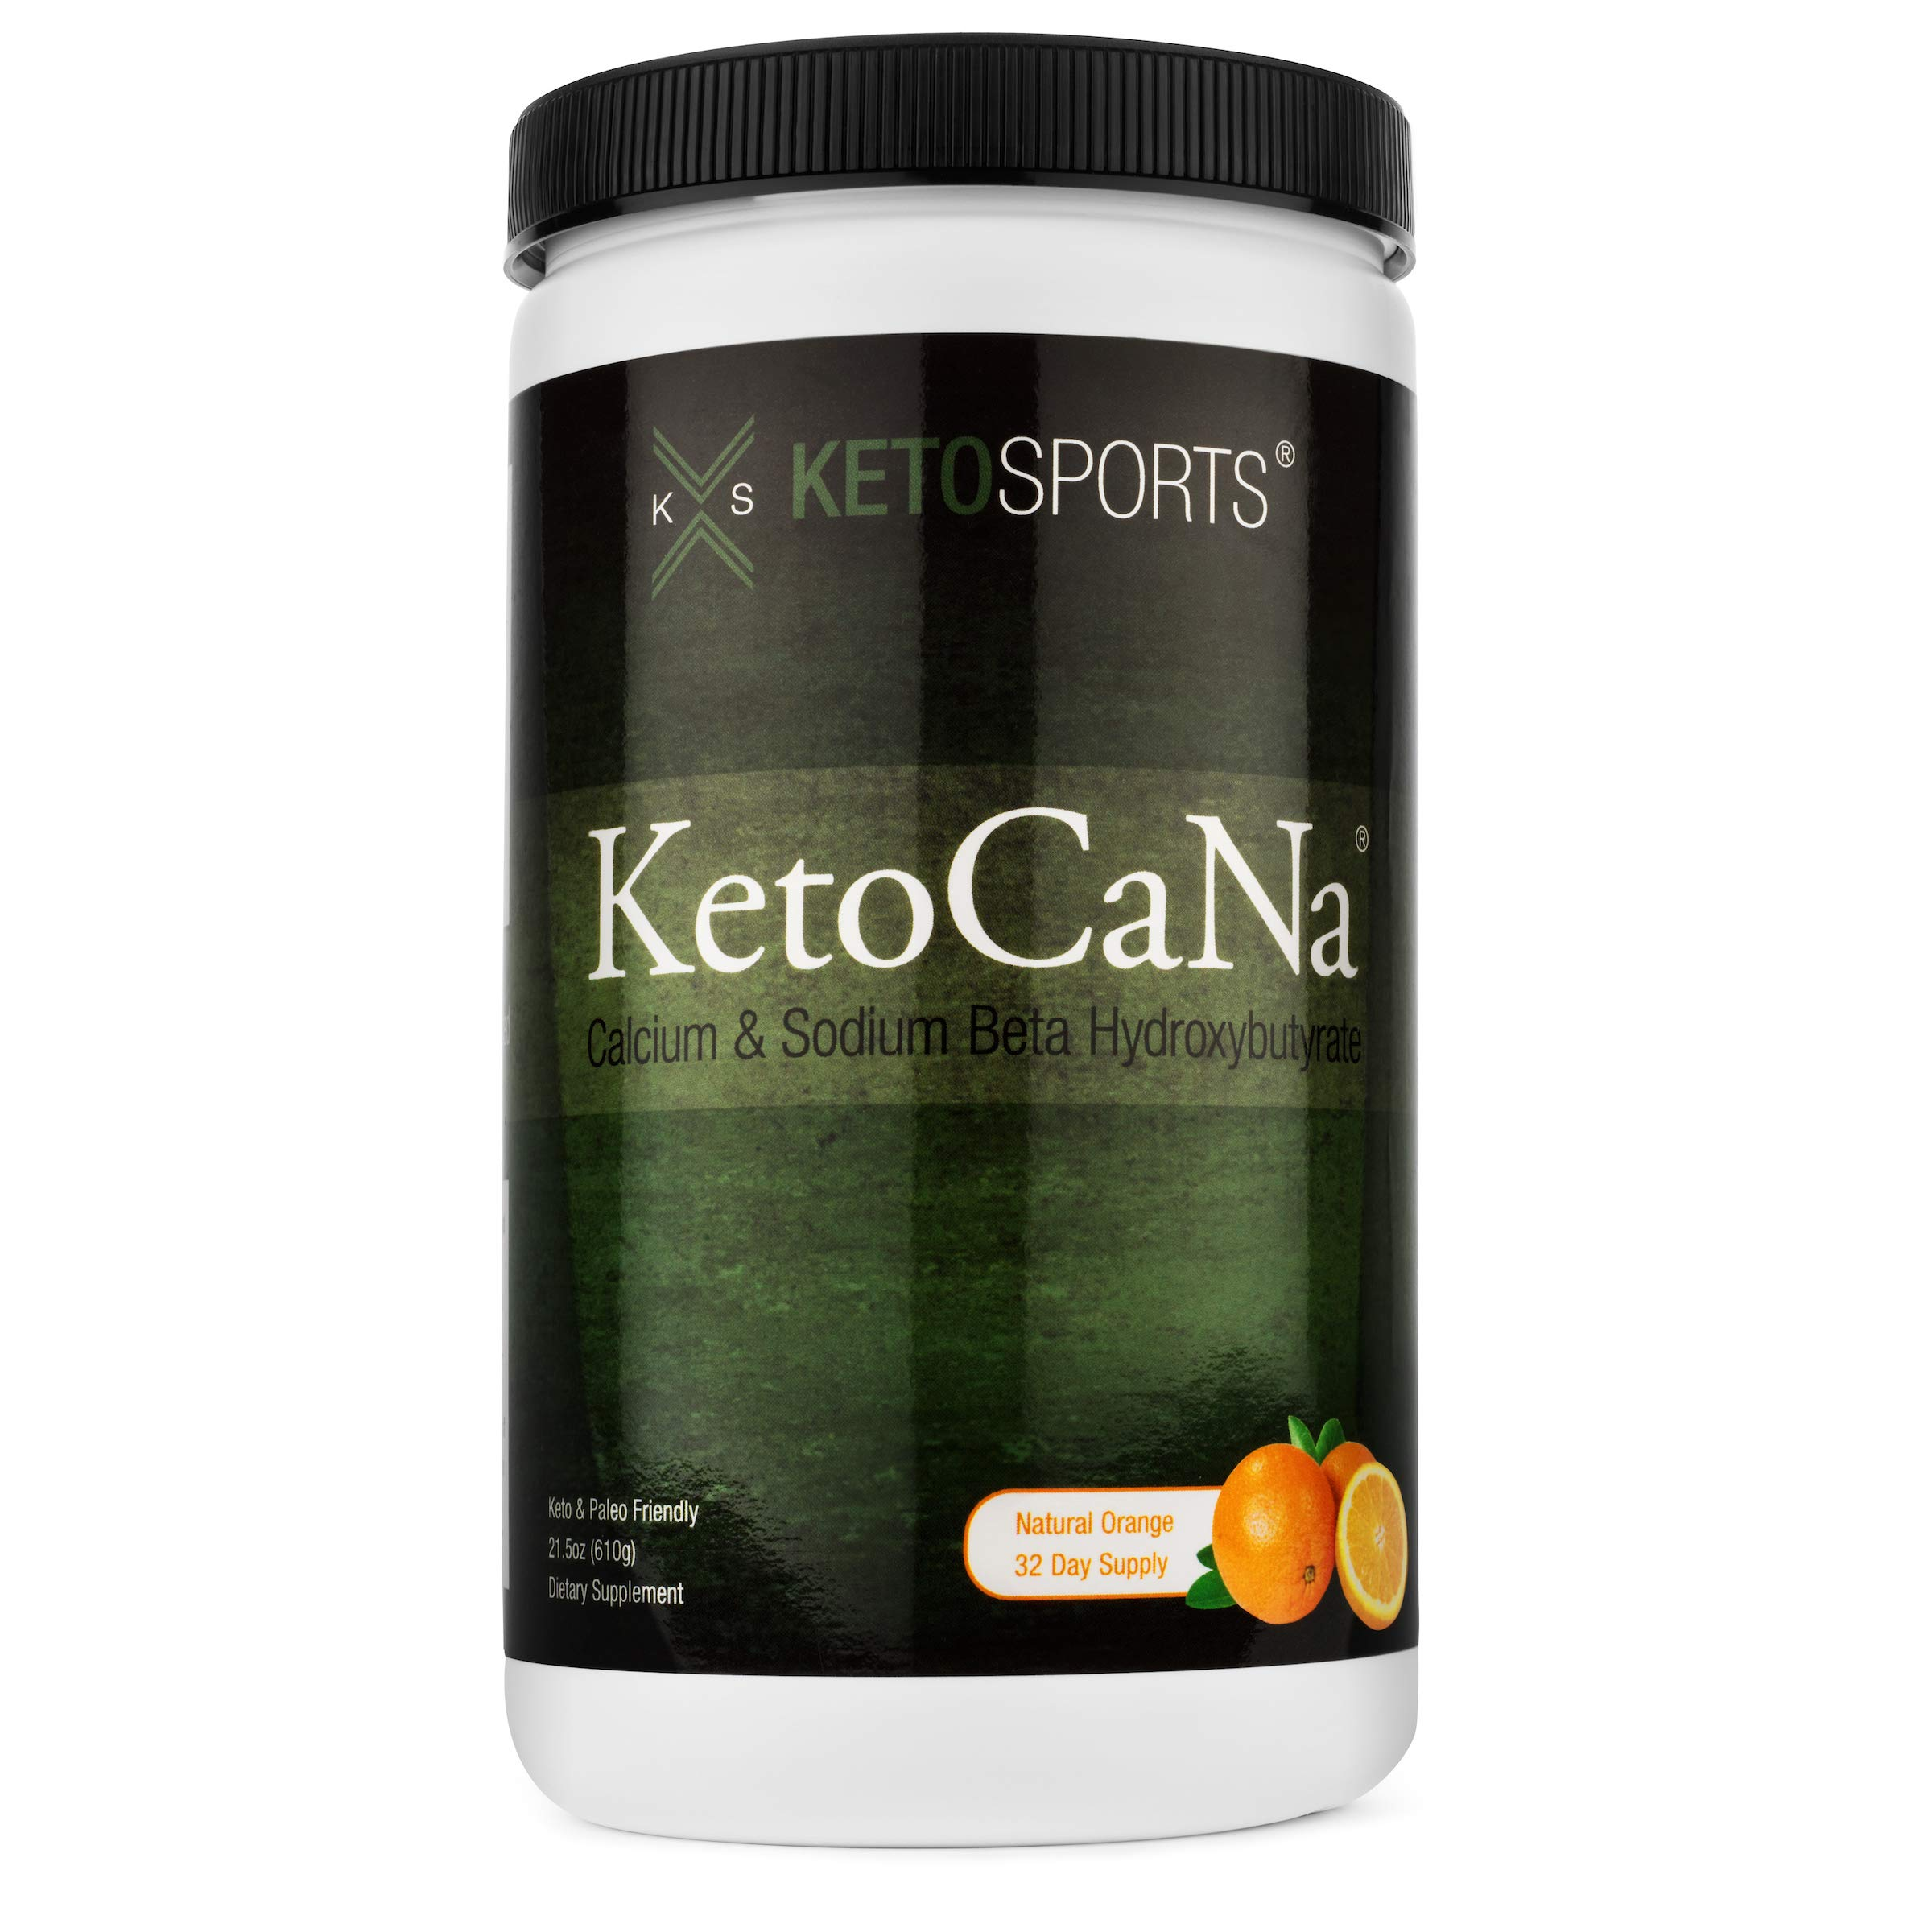 KetoSports KetoCaNa BHB Exogenous Ketone Supplement, Stimulant-free Physical & Mental Performance Energy Booster Natural Orange 21.5 Oz Container 32 Servings by KetoSports